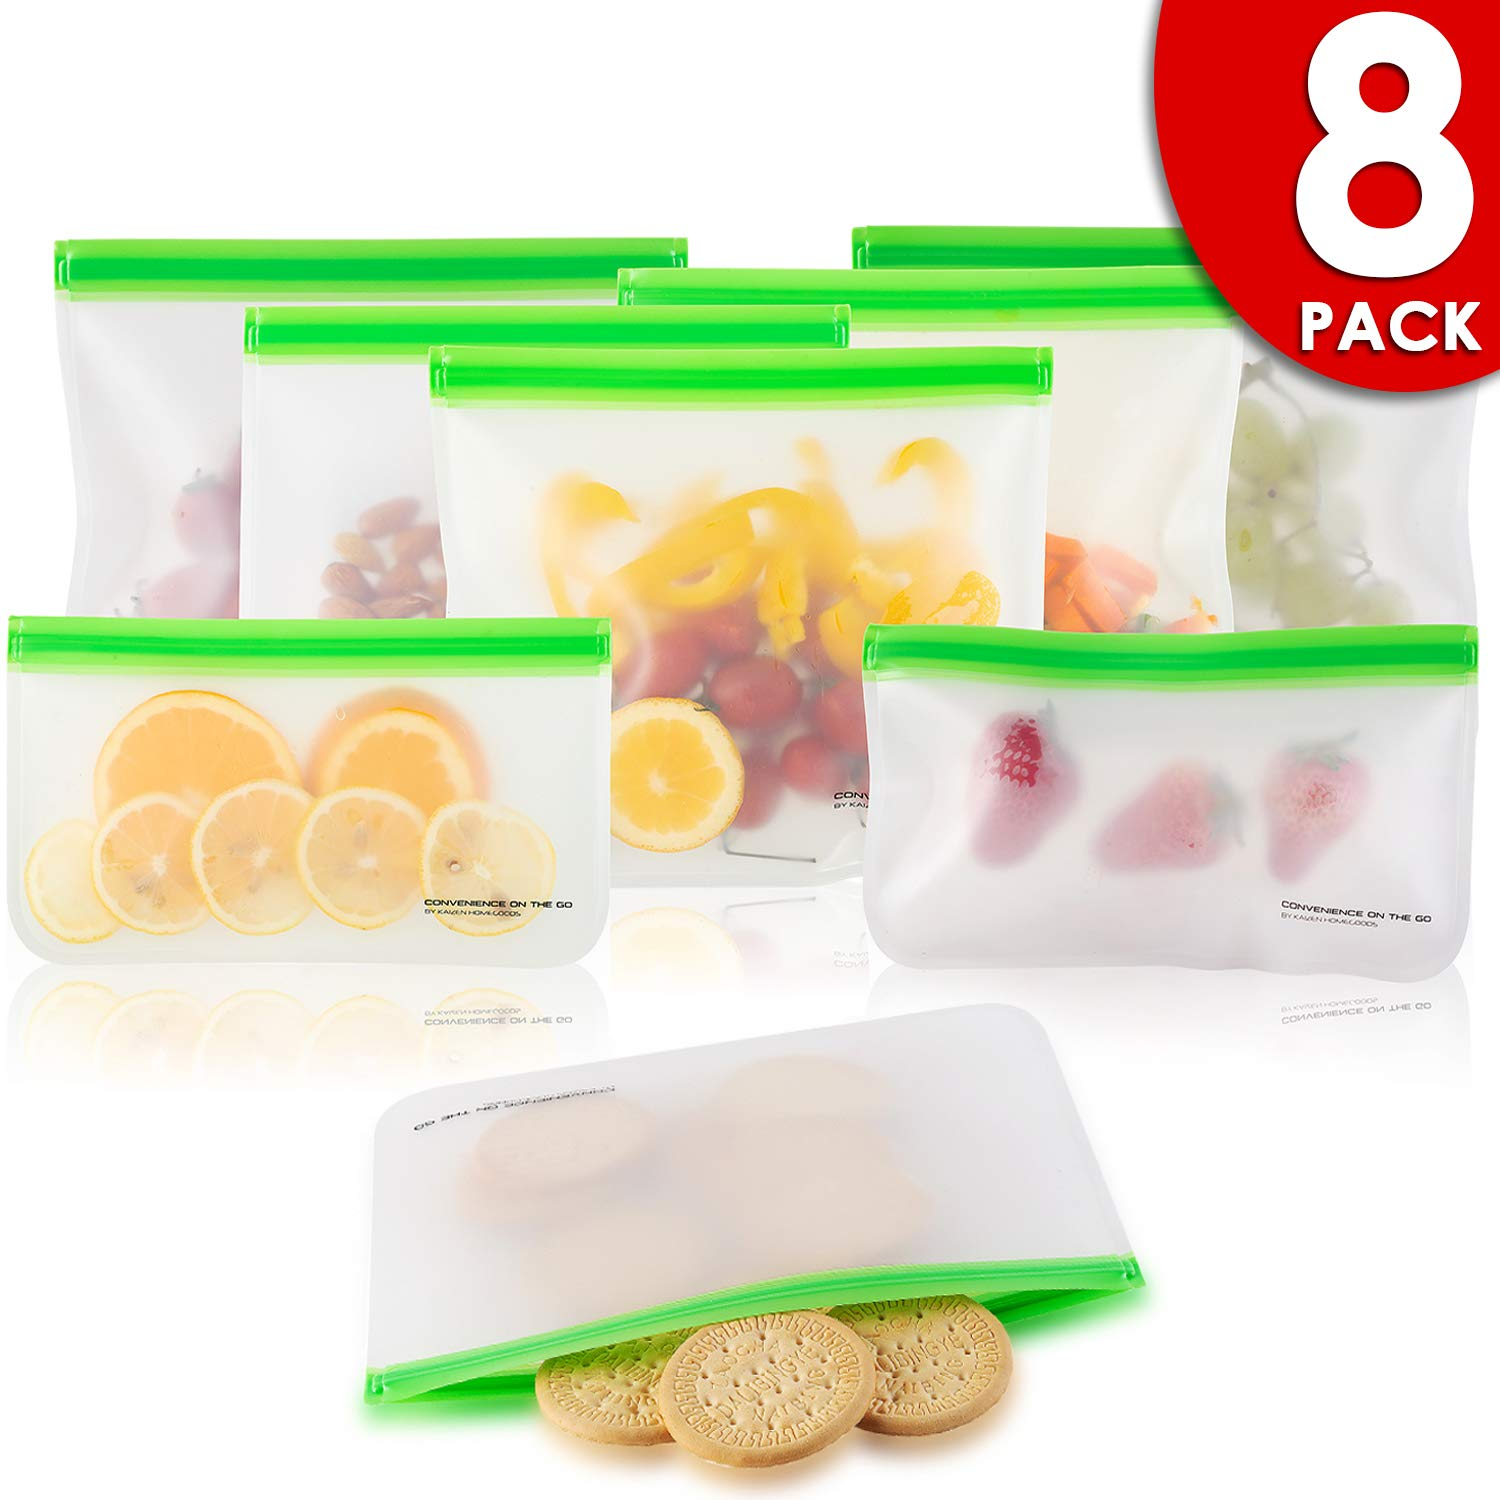 EXTRA THICK Reusable Storage Bags (8 Pack) Silicone and Plastic Free Ziplock for Food, Lunch Sandwich | Small Kids Snack Size, Travel Baggies and More | Bag with Zipper and seal Lock Top Freezer Safe by Kaizen Home Goods